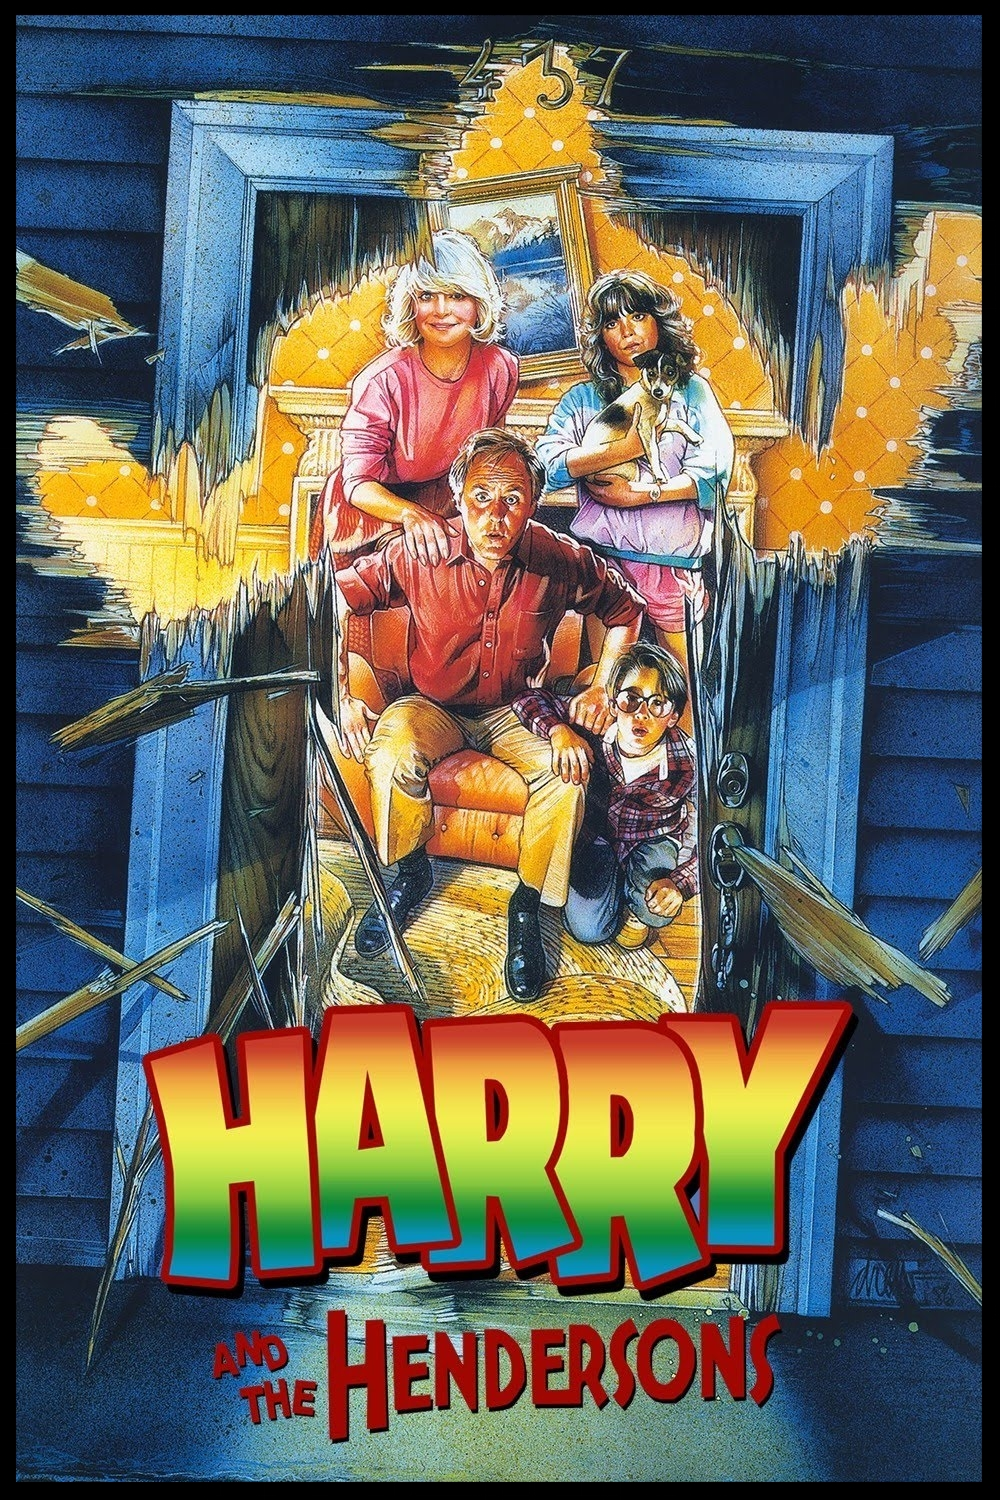 Harry and the Hendersons painted movie poster